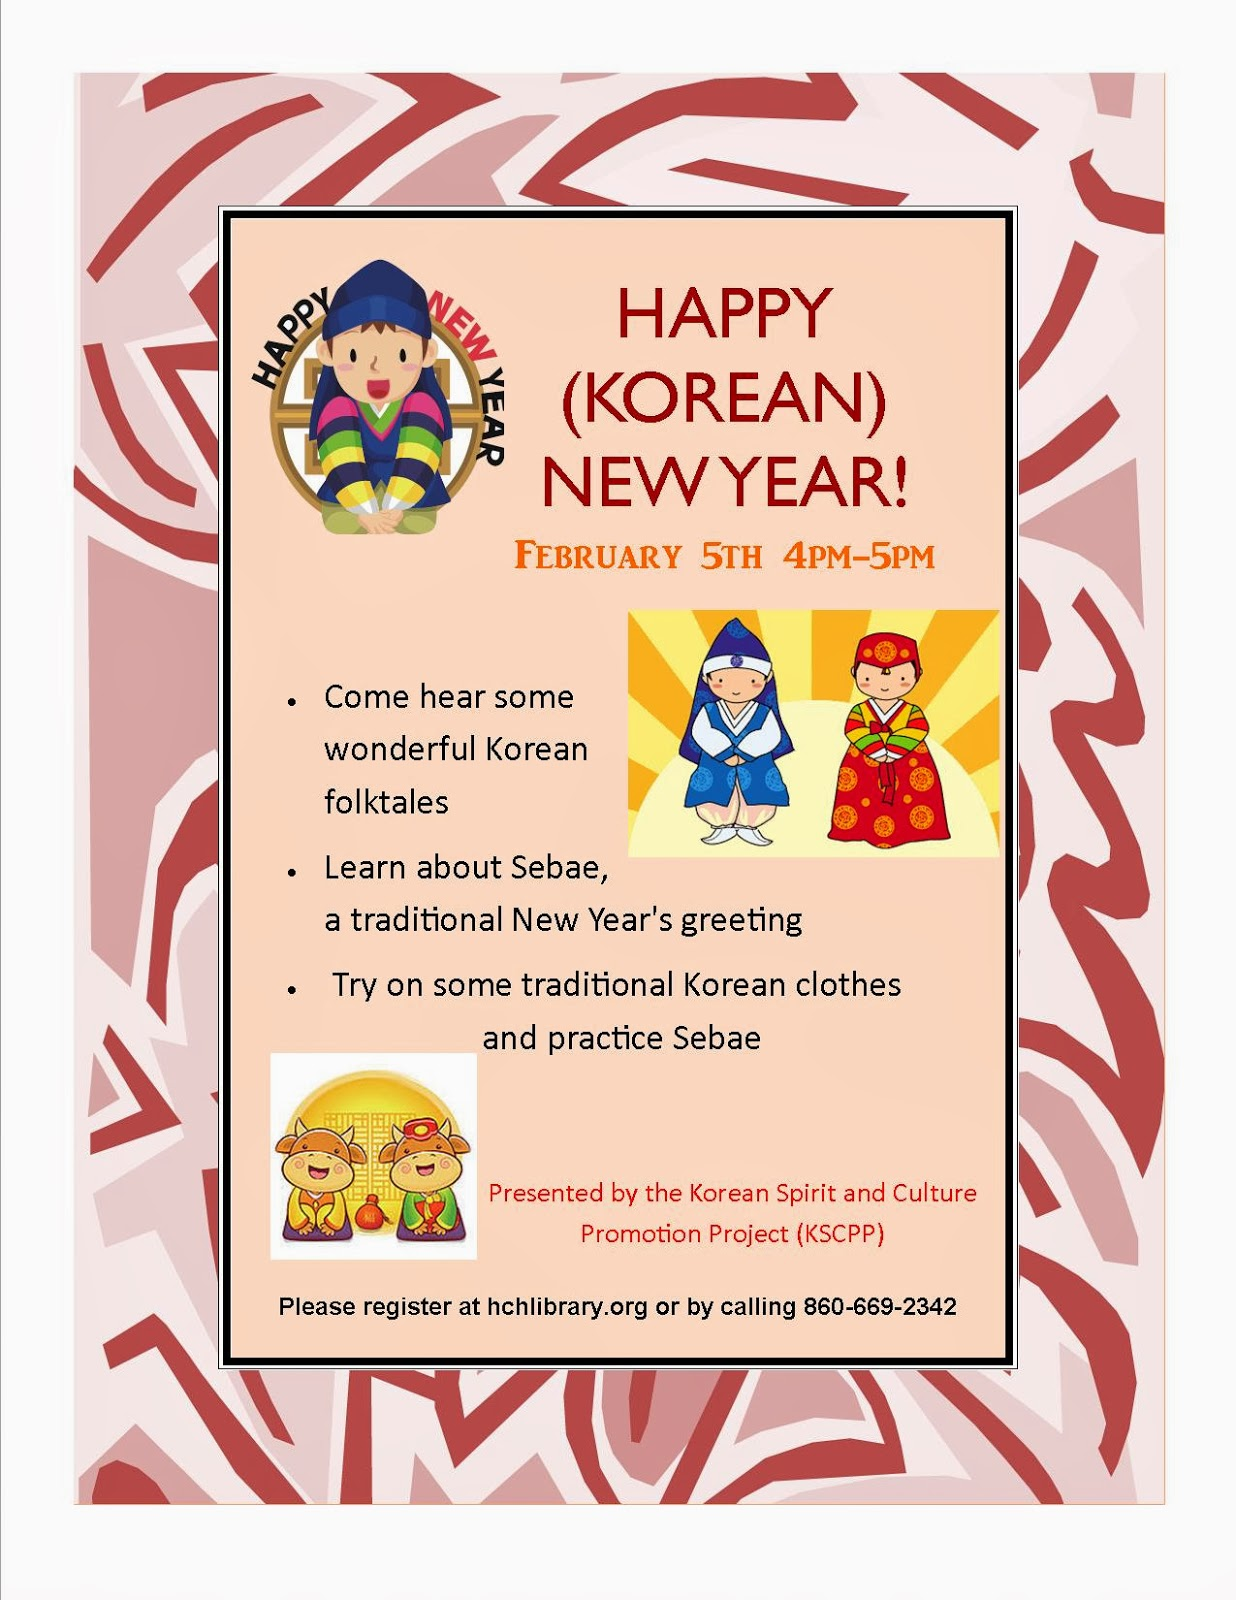 New korean greeting for chinese new year chinese new year korean greeting for feb year wishes 2015 new year korean korean 2015 19 m4hsunfo Gallery